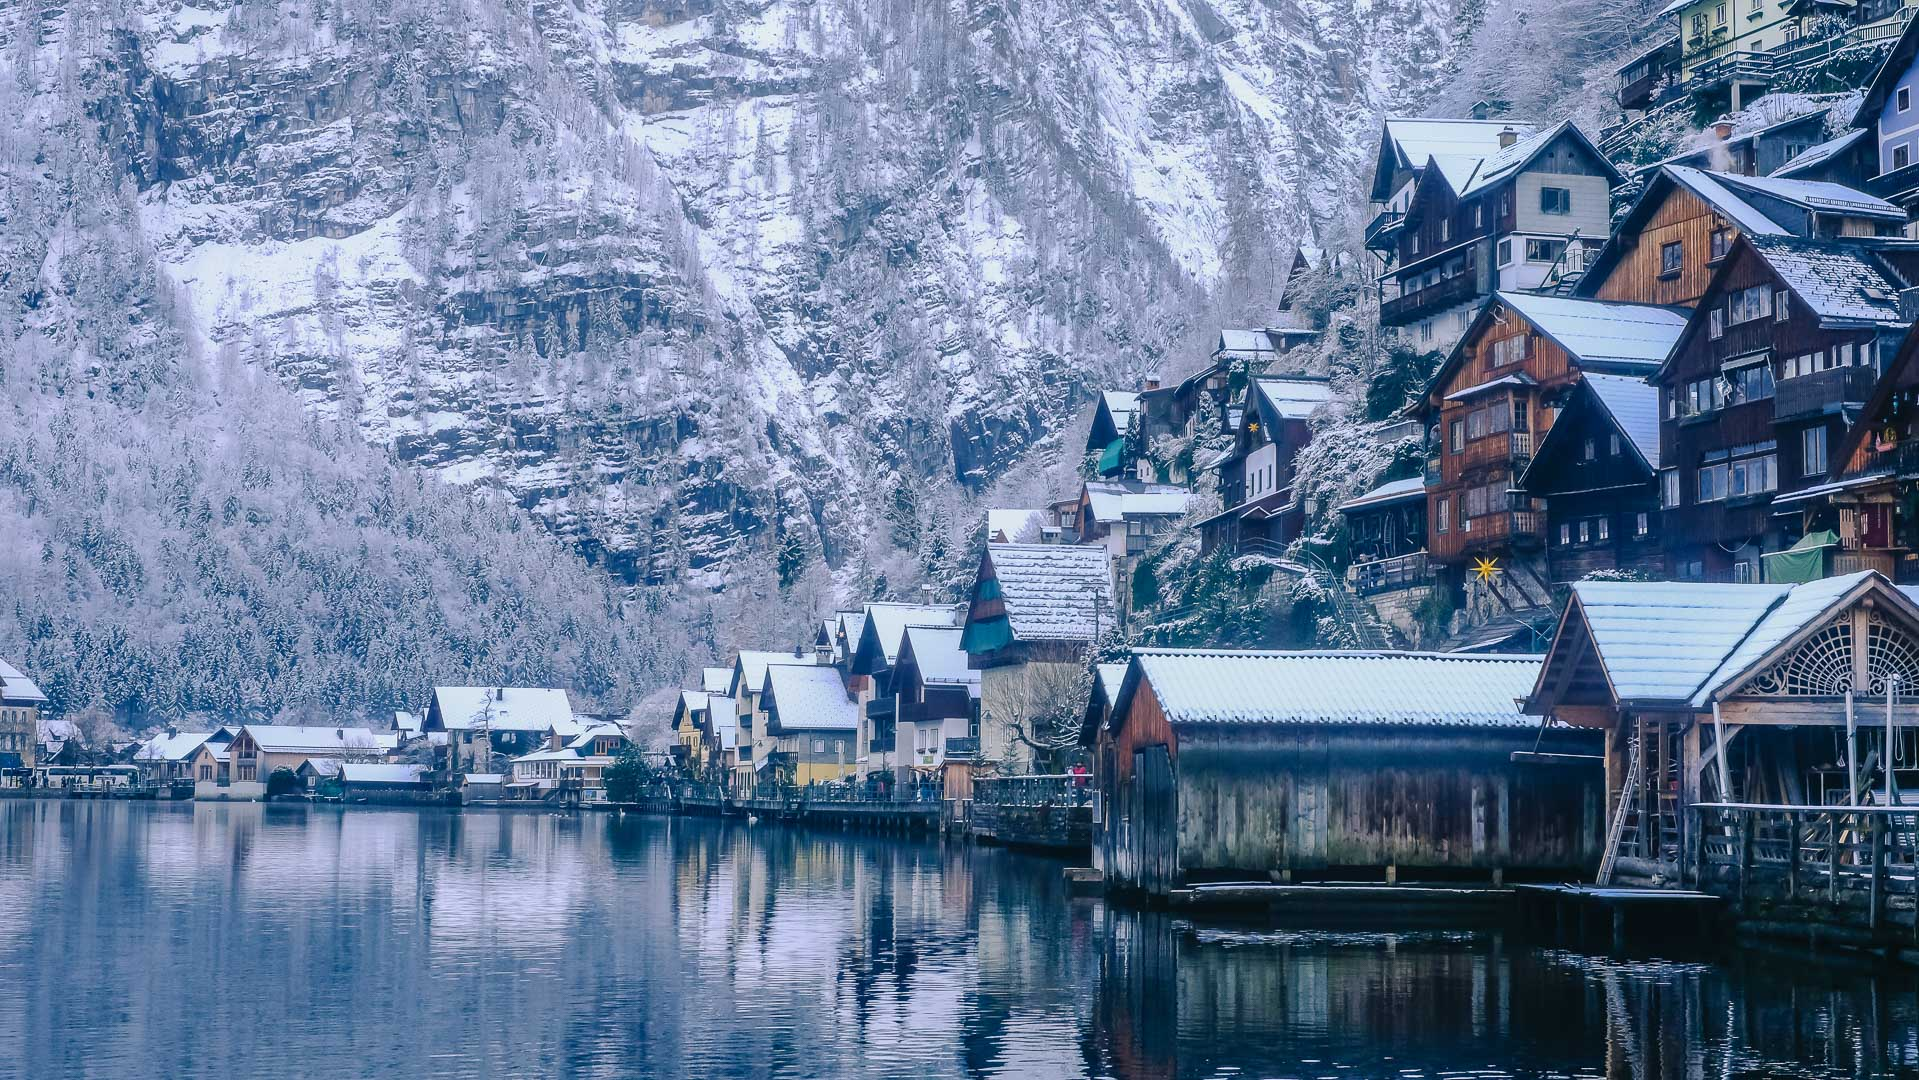 The Houses on the side of the Lake in Hallstatt with snow on the roofs